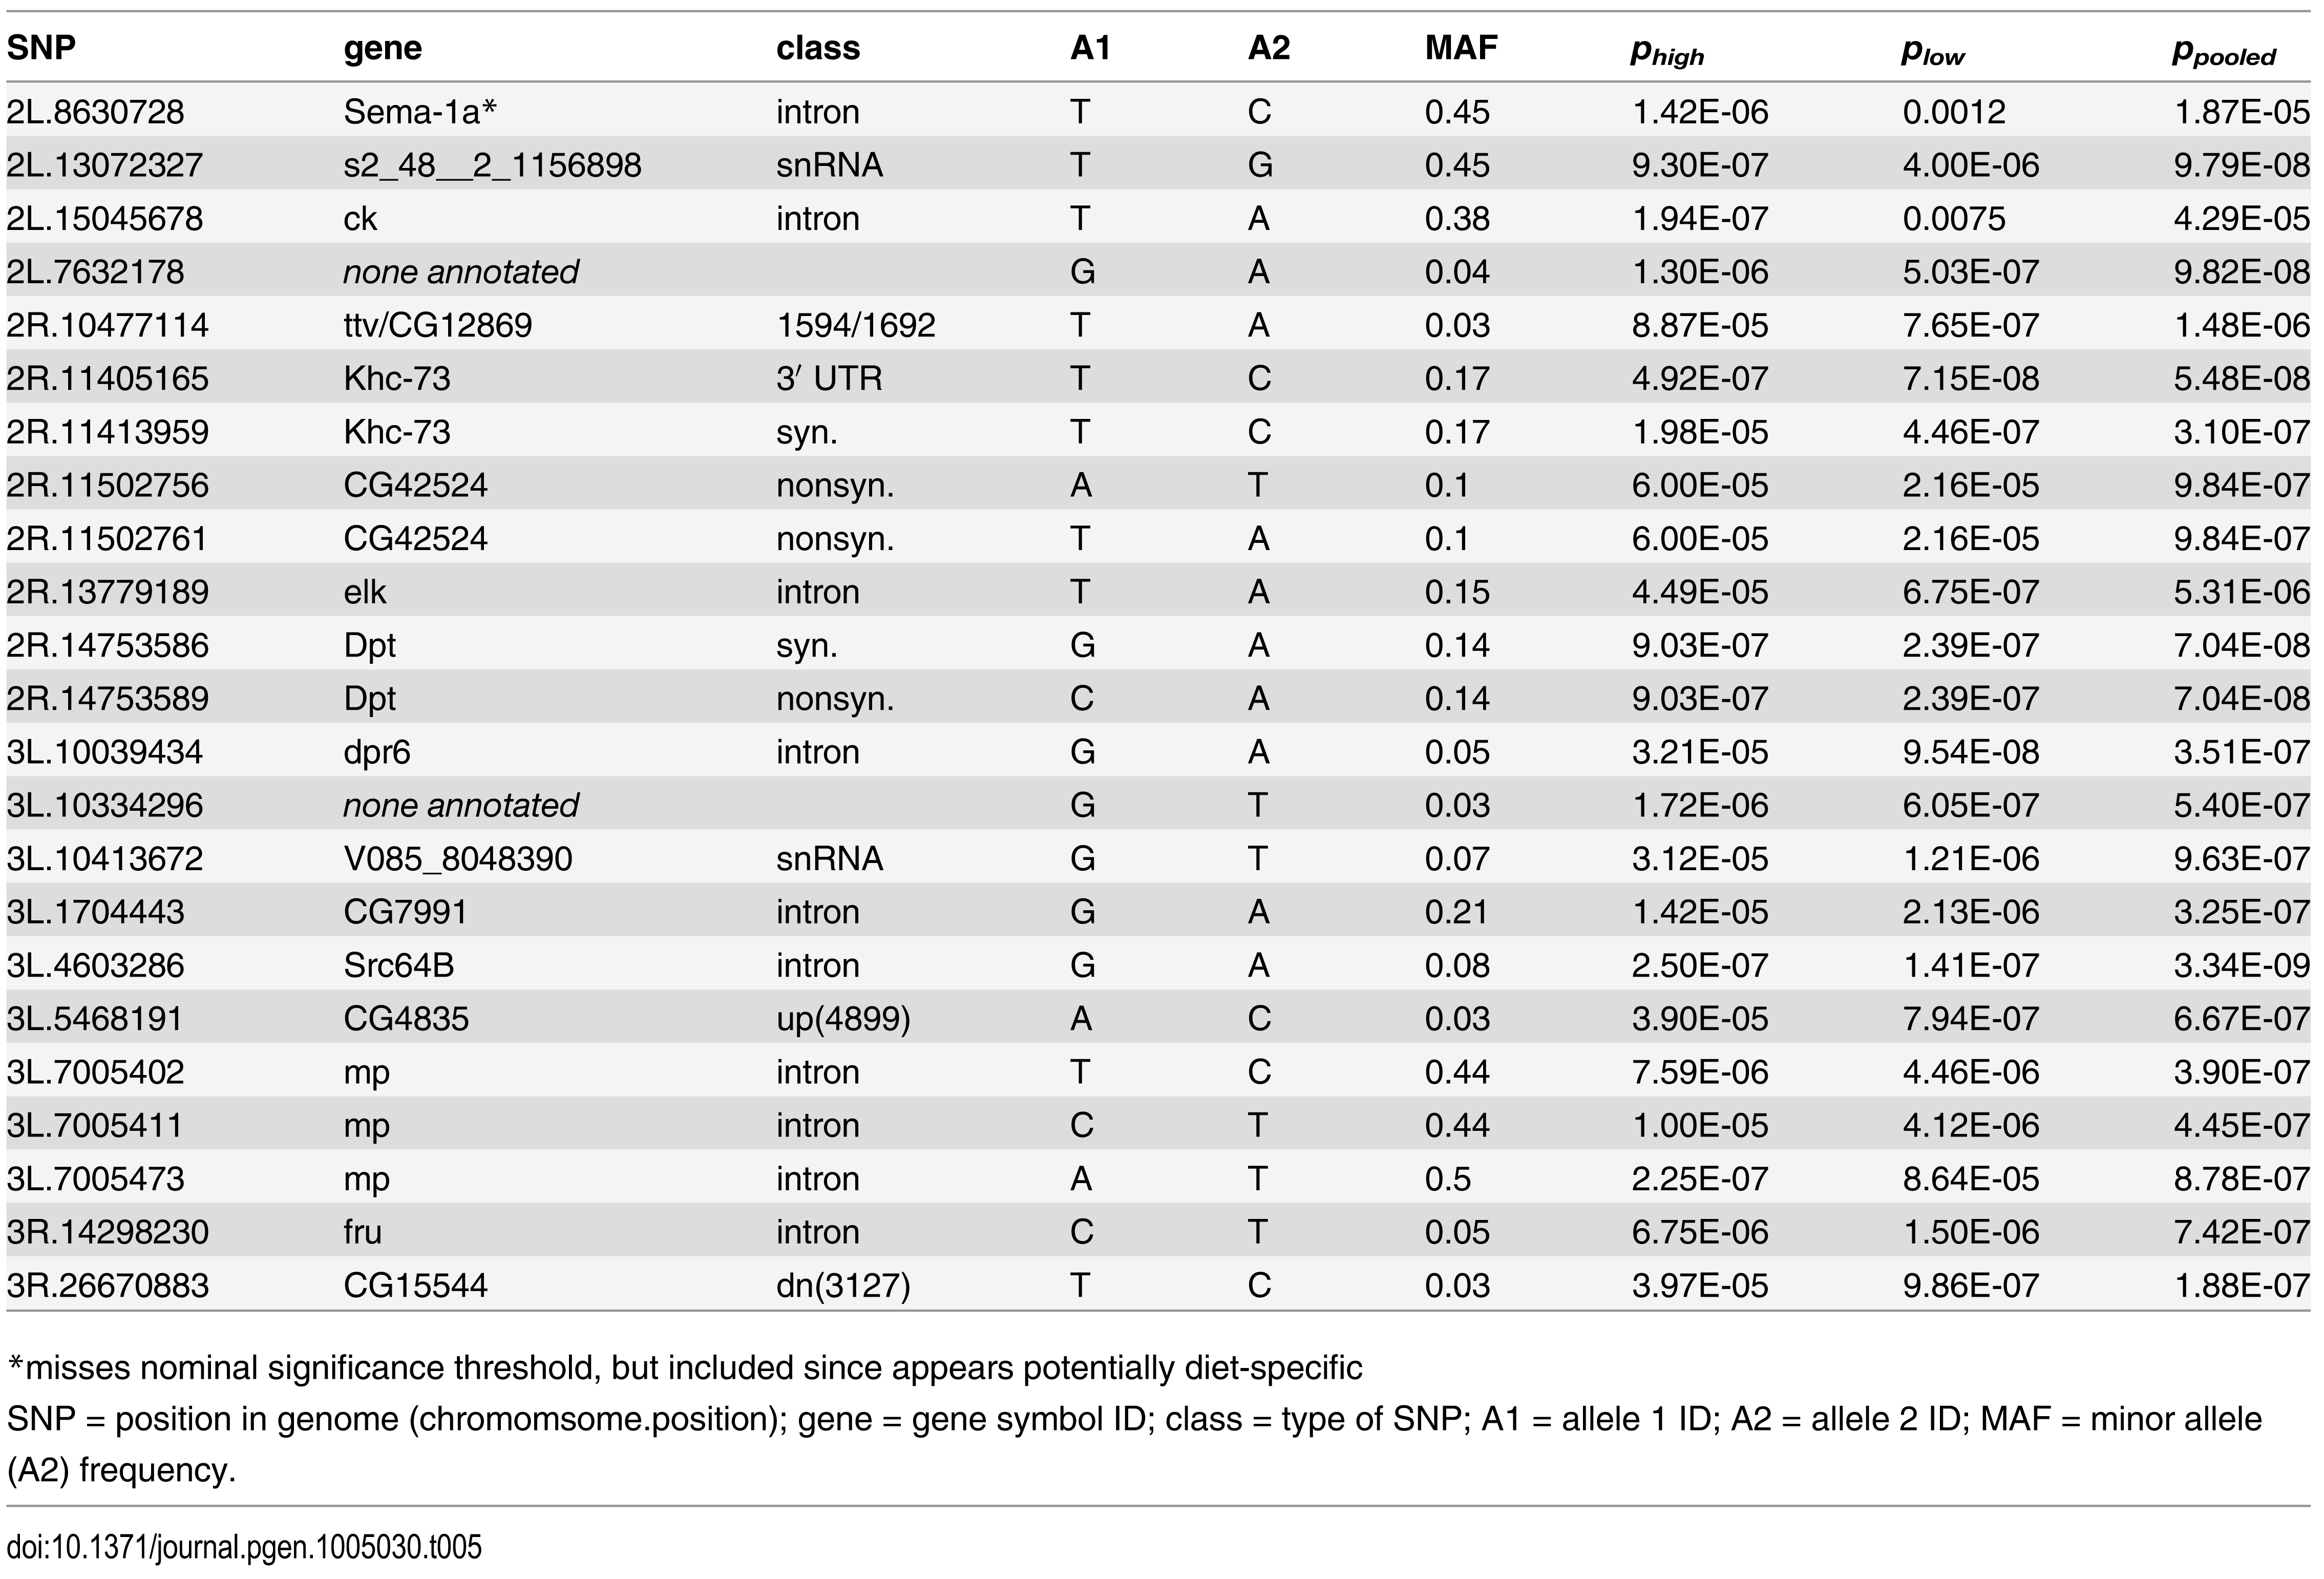 Significant SNPs (P&lt;10<sup>-6</sup>) from genome-wide association study for immune defense against <i>Providencia rettgeri</i> infection with data from the high glucose diet (<i>p</i><sub><i>high</i></sub>), low glucose diet (<i>p</i><sub><i>los</i></sub>) and when data from both diets are combined (<i>p</i><sub><i>pooled</i></sub>).